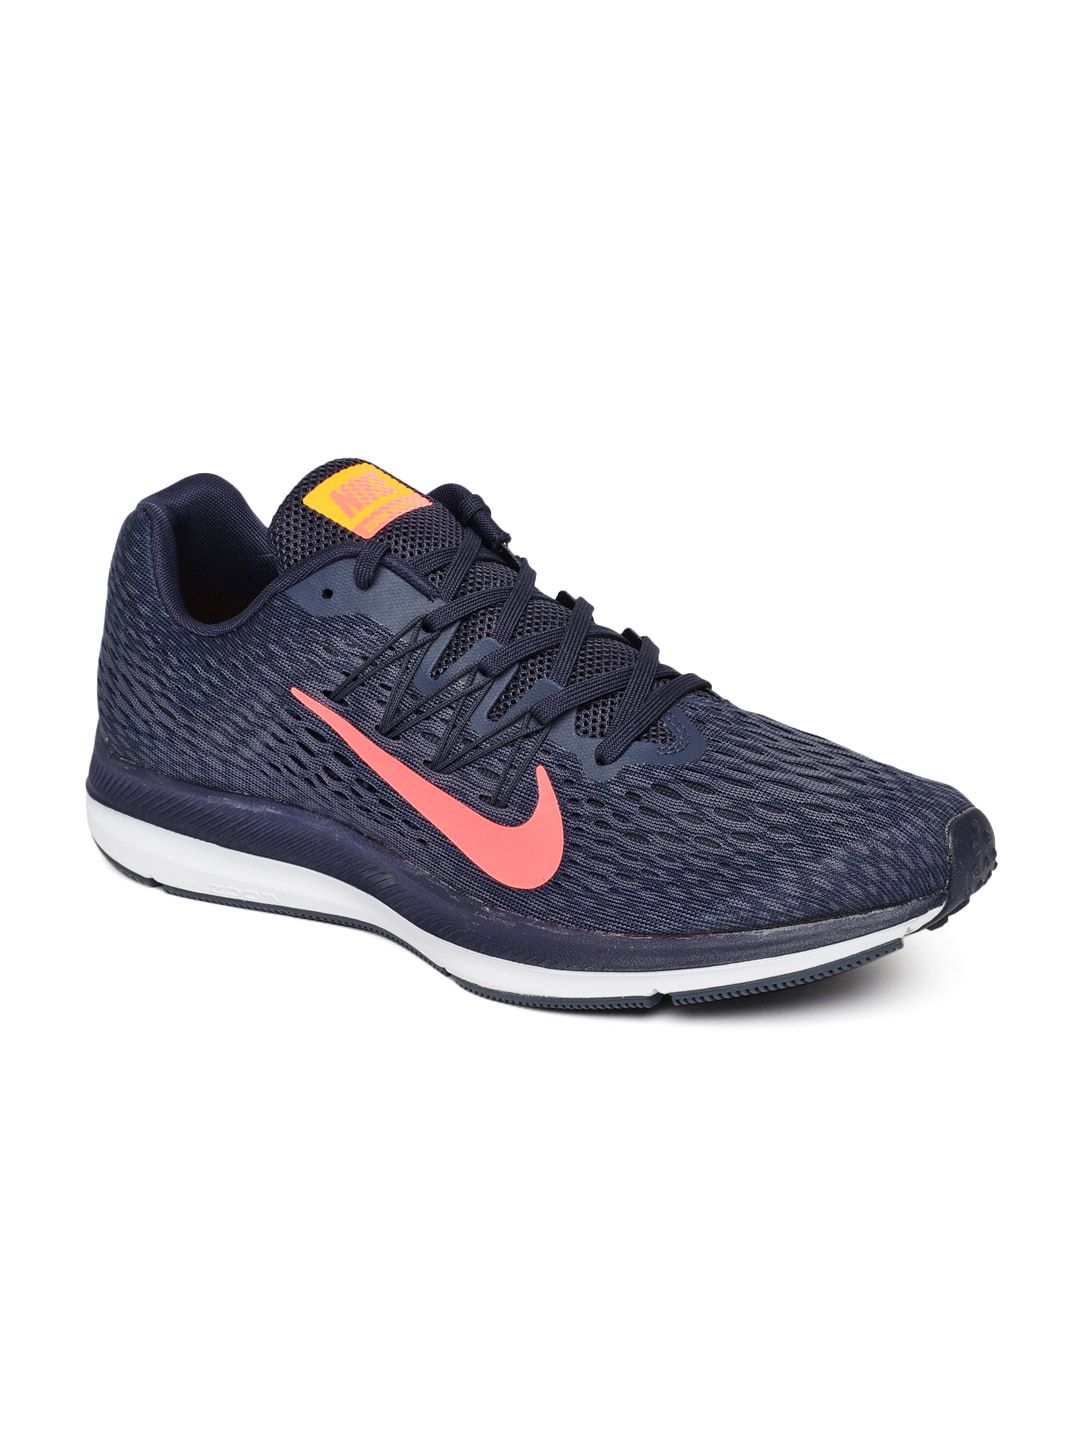 Nike Running Shoes - Buy Nike Running Shoes Online  0af3c8299